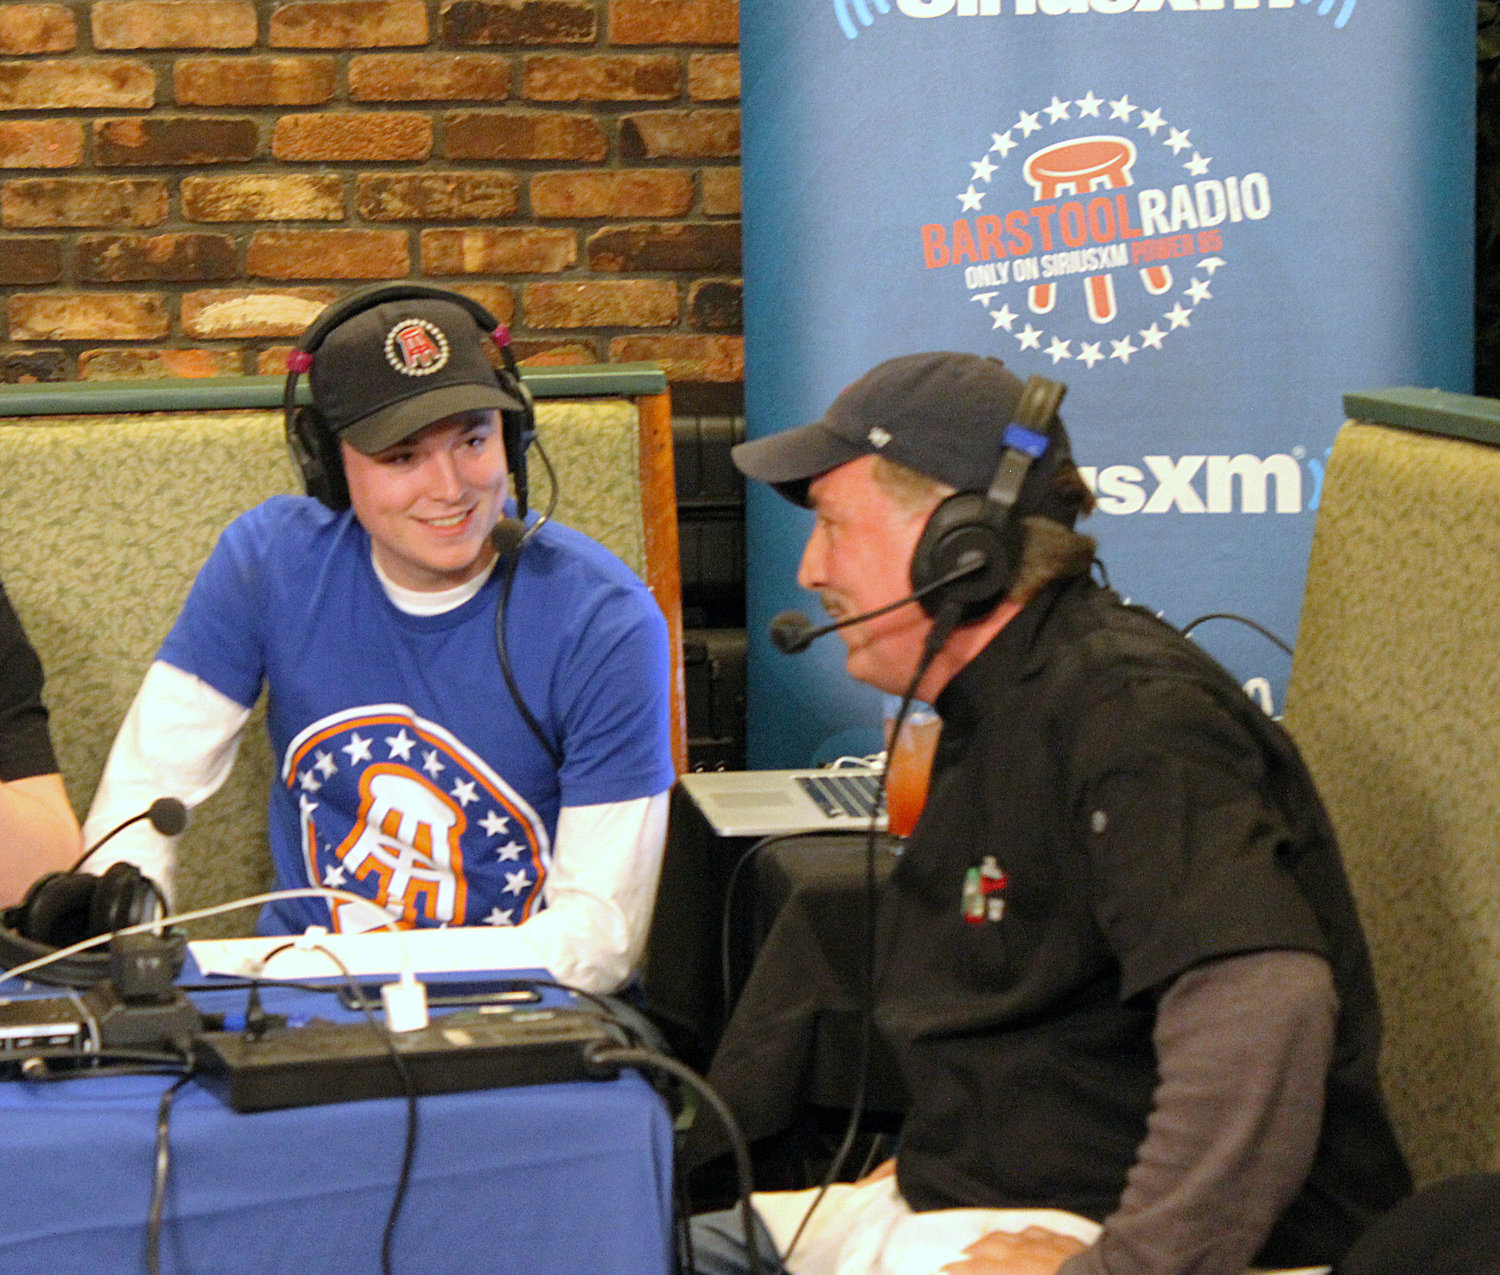 Barstool Sports broadcast an episode on SiriusXM, live from Borrelli's Italian Restaurant in East Meadow, on March 19. One of its hosts, Frankie Borrelli, 25, of East Meadow, left, shared jokes about the family with his father, Frank Borrelli Jr.